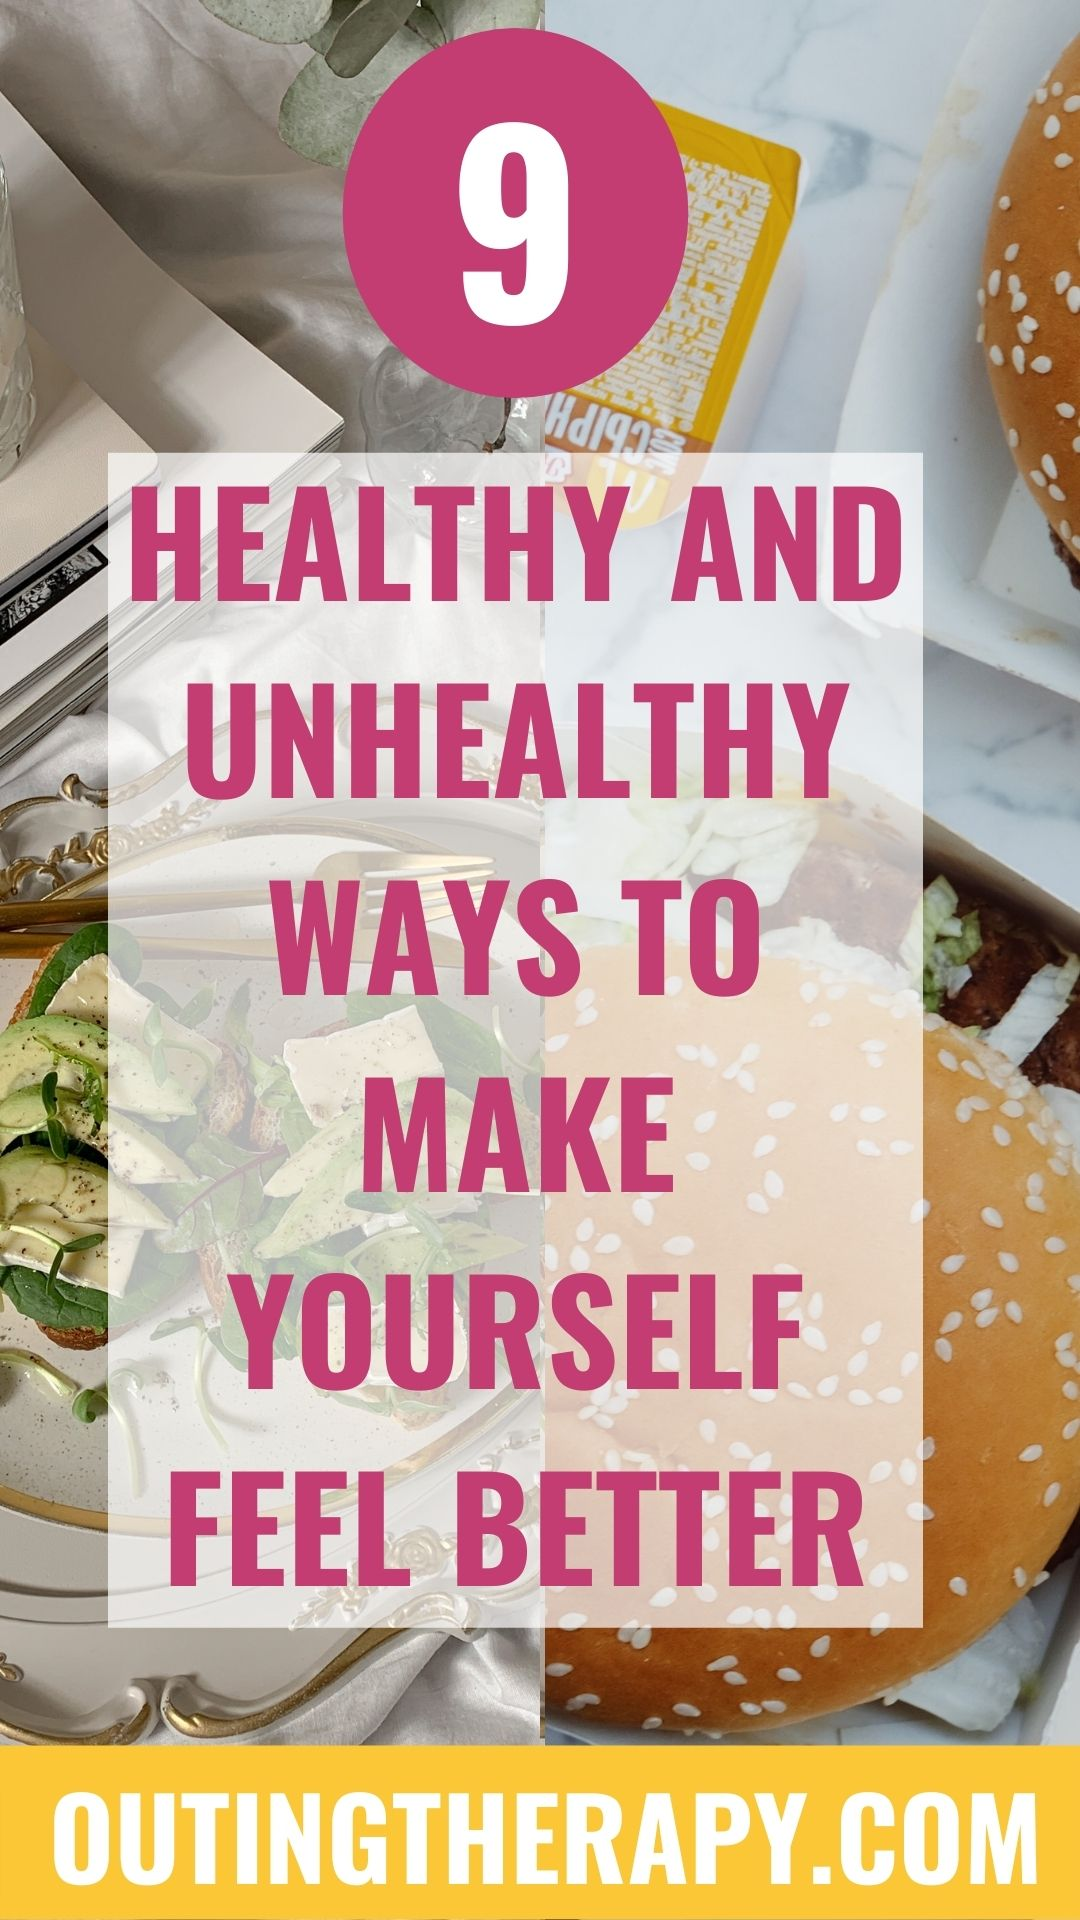 9 HEALTHY AND UNHEALTHY WAYS TO MAKE YOURSELF FEEL BETTER